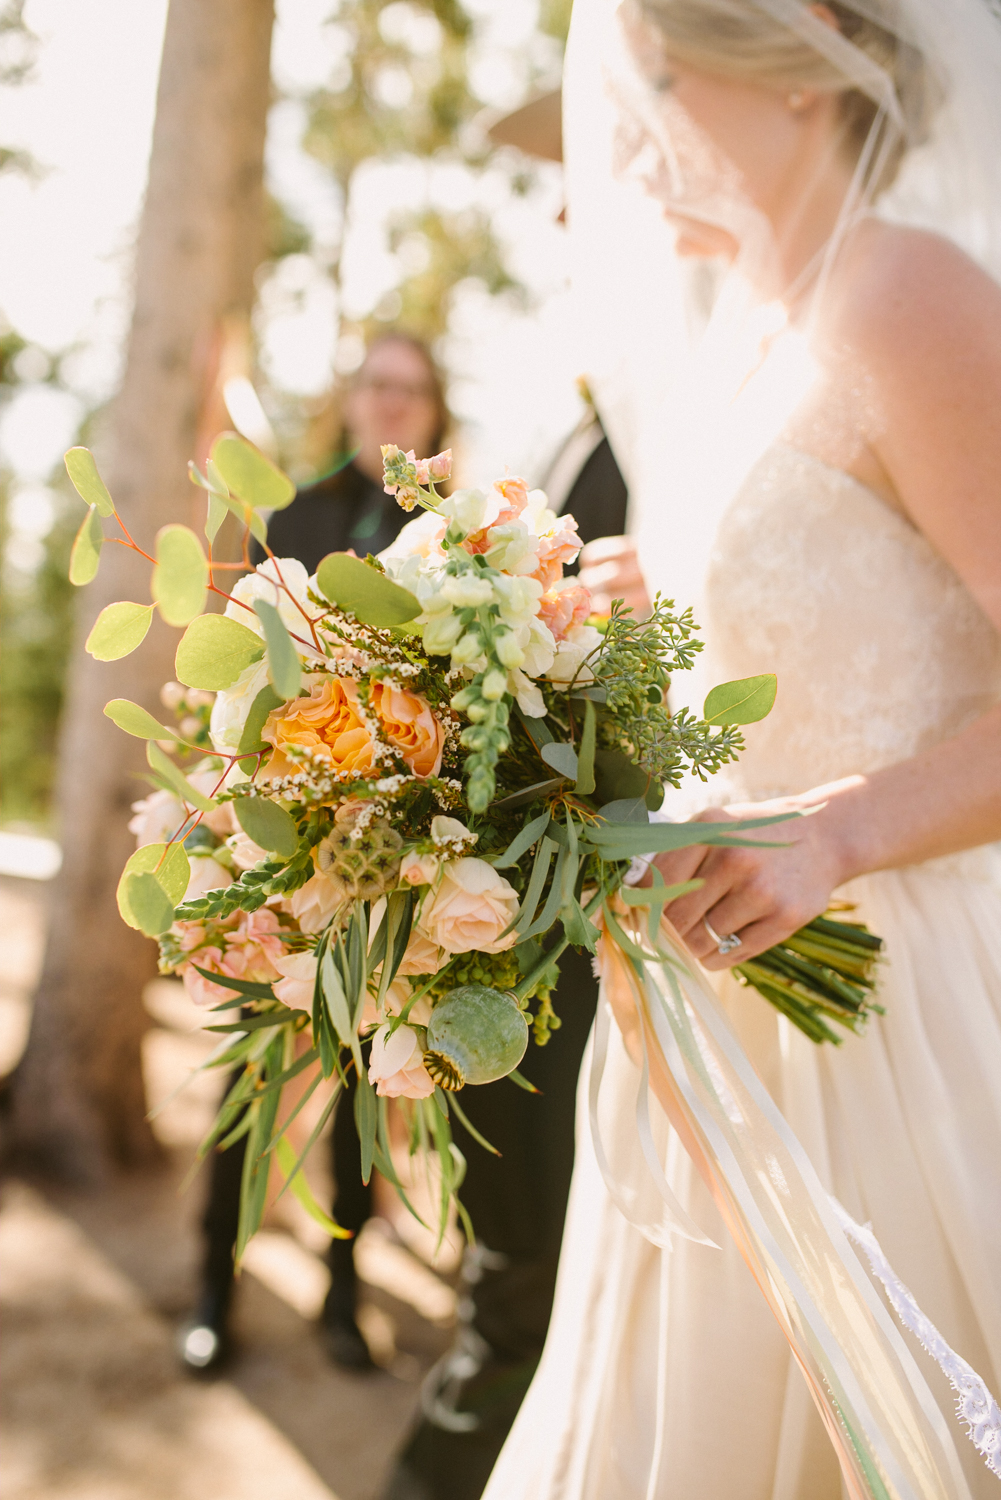 Flowers by Lace and Lilies / Colorado wedding florist - peach, sage, green, white, ivory, blush - natural, organic, romantic, whimsical - Fort Collins, Grand Lake, Destination, Travel - mountain wedding, scabiosa pod, ranunculus, eucalyptus, garden rose